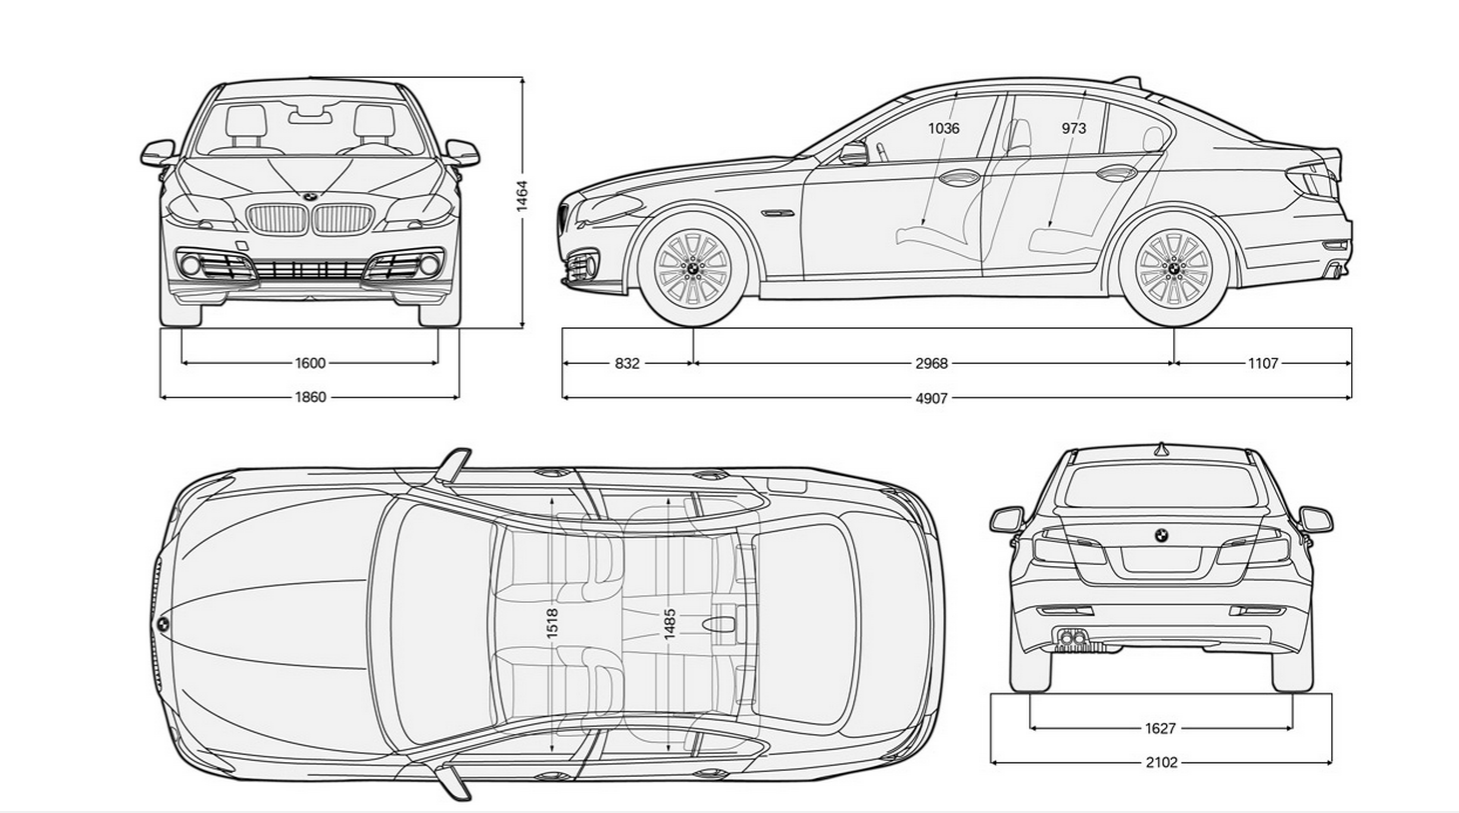 Le Meilleur Bmw 5 Series Sizes And Dimensions Guide Carwow Ce Mois Ci